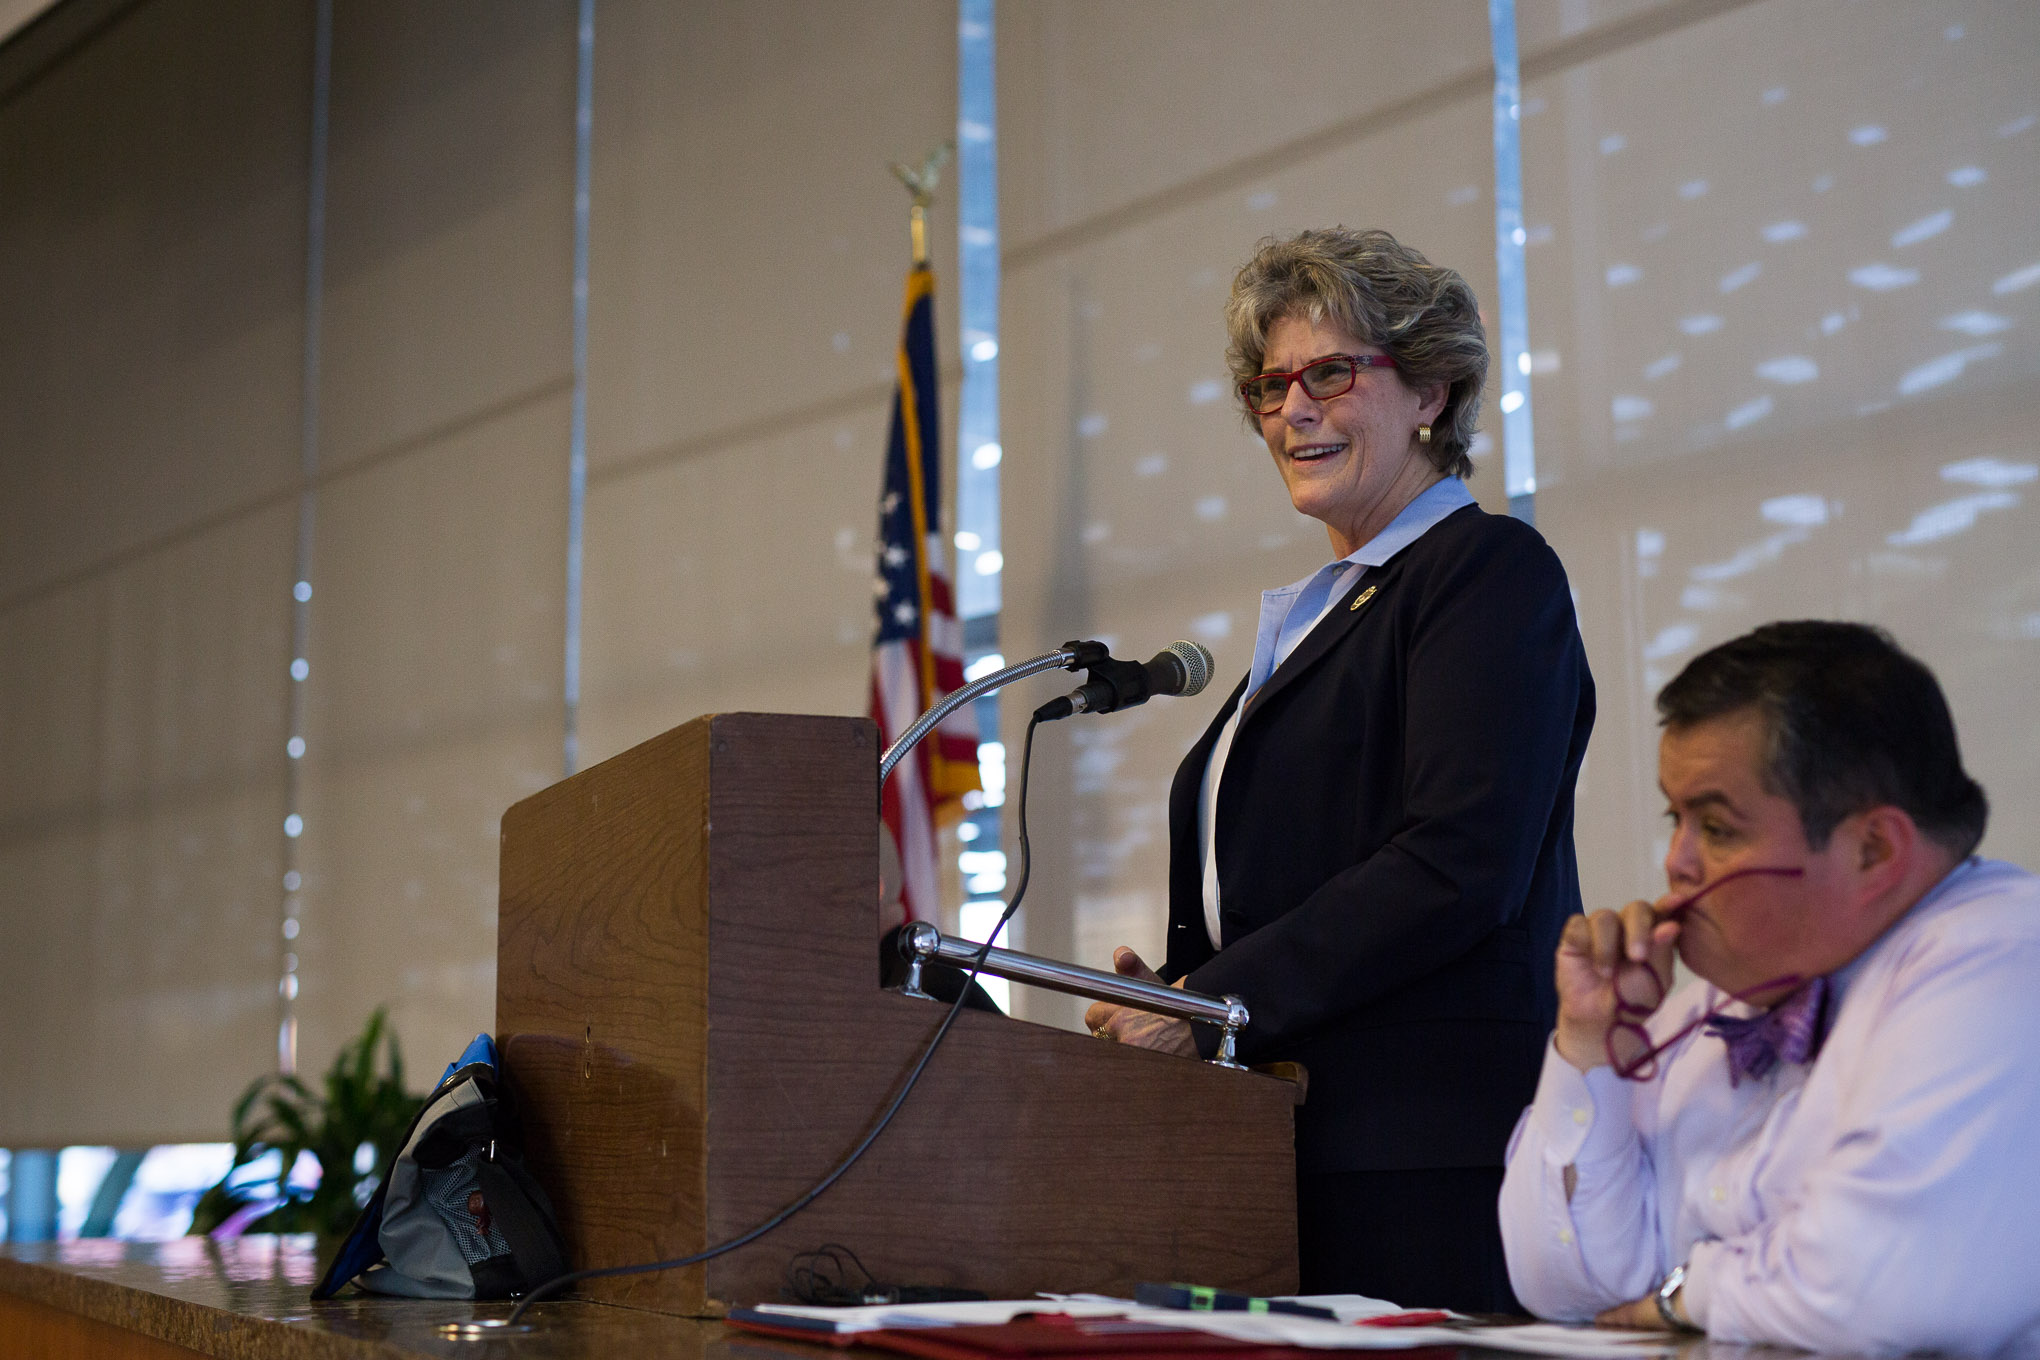 Sheriff Susan Pamerleau reacts to the large audience attendance of her opponent, Javier Salazar. Photo by Scott Ball.